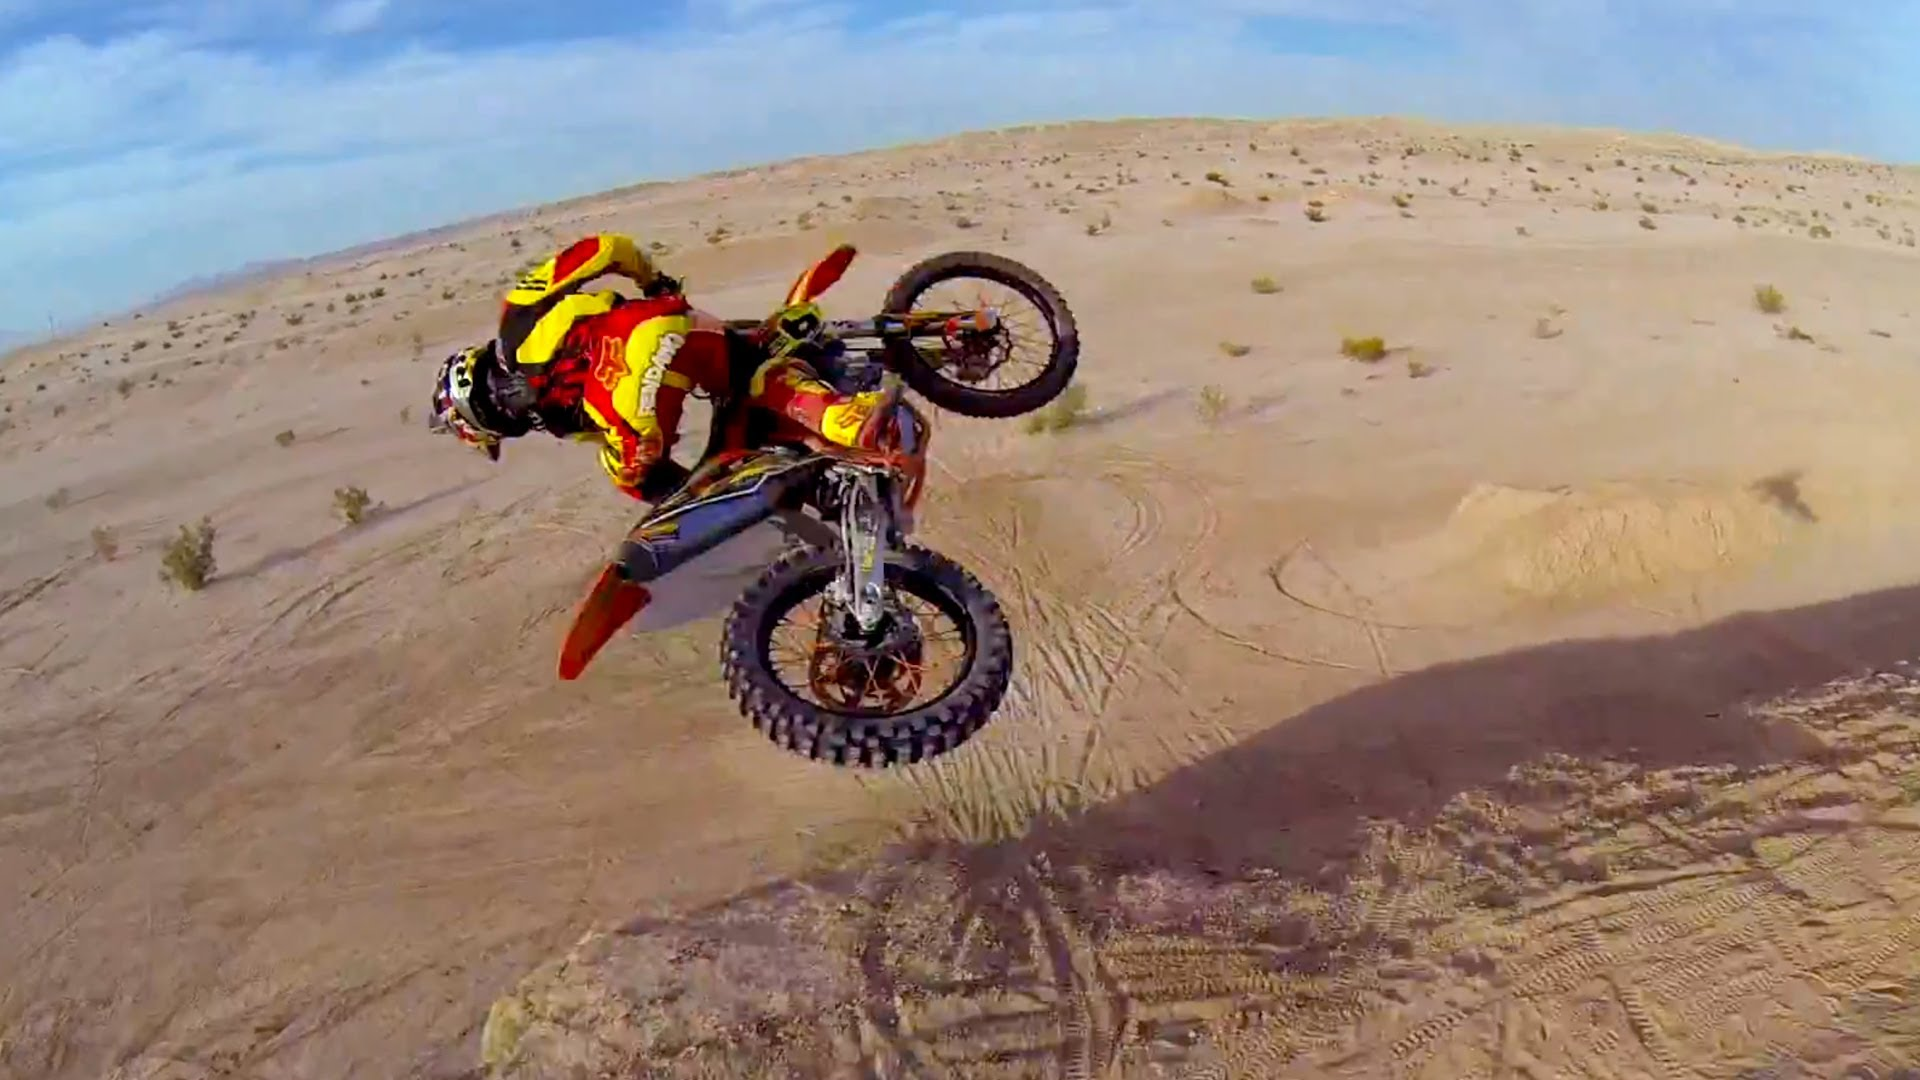 GoPro: Desert Freeride with Ronnie Renner